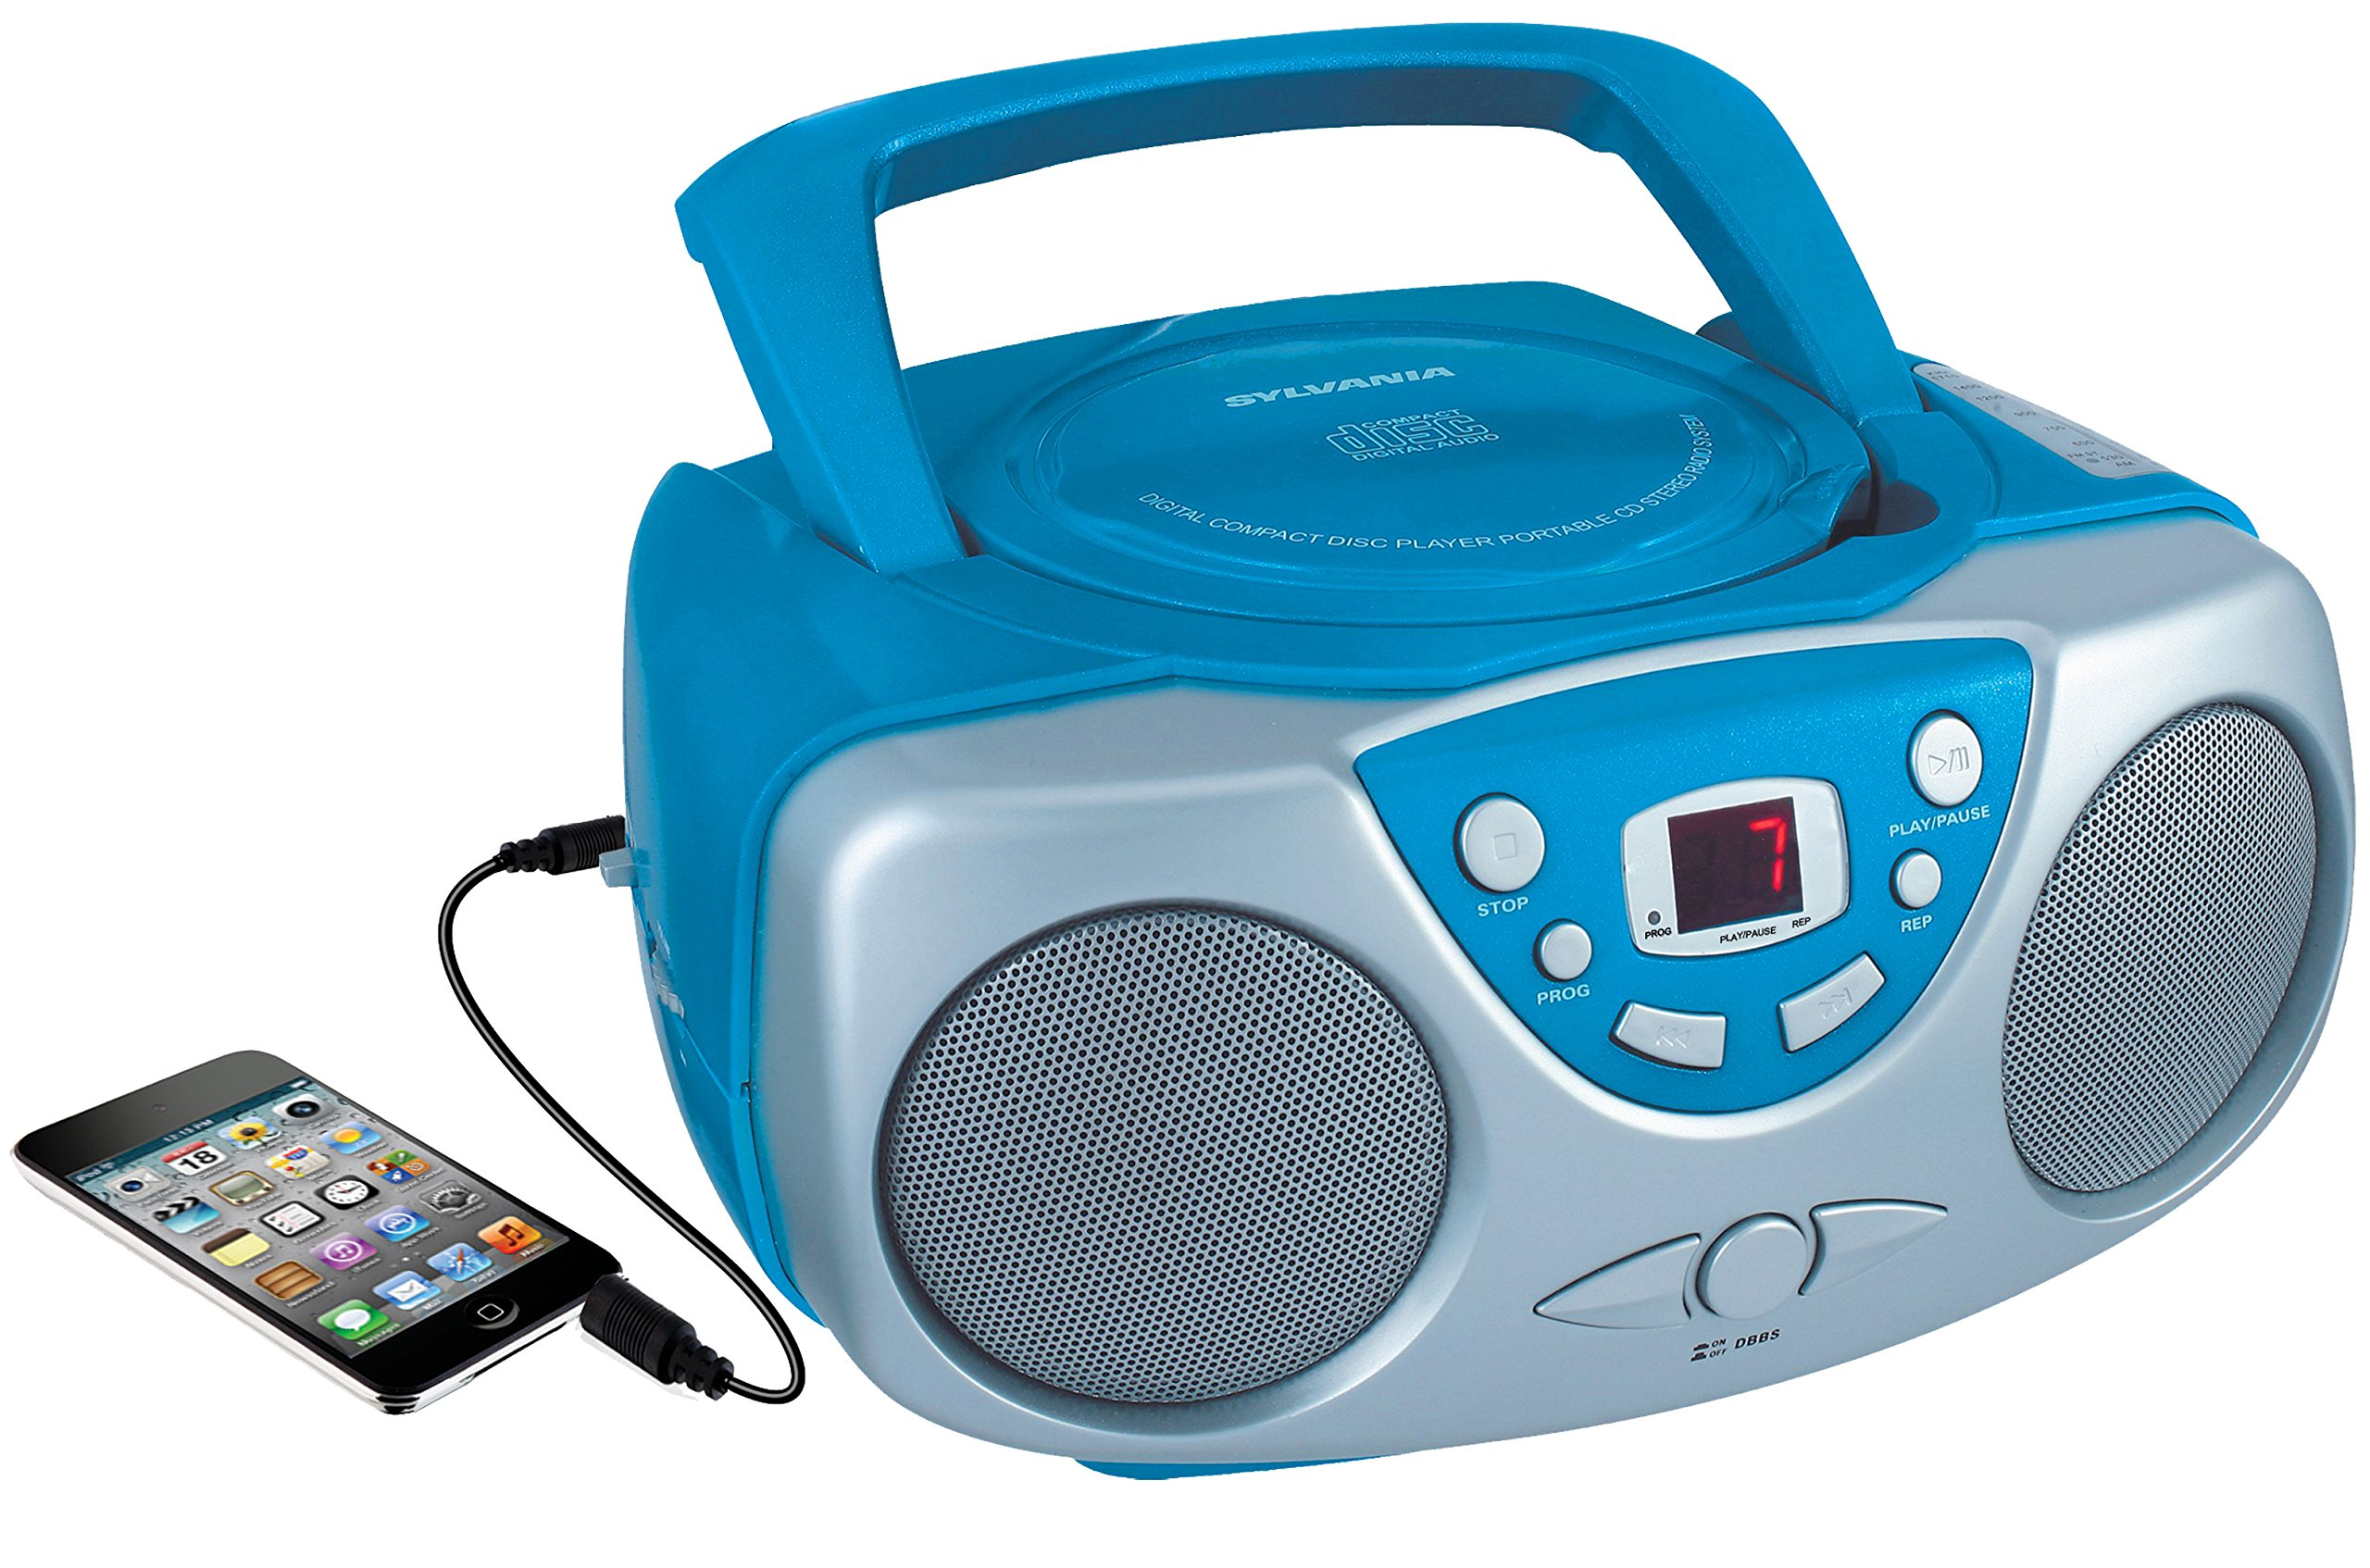 Sylvania SRCD243 Portable CD Player with AM/FM Radio, Boombox (Blue) by Curtis (Image #1)